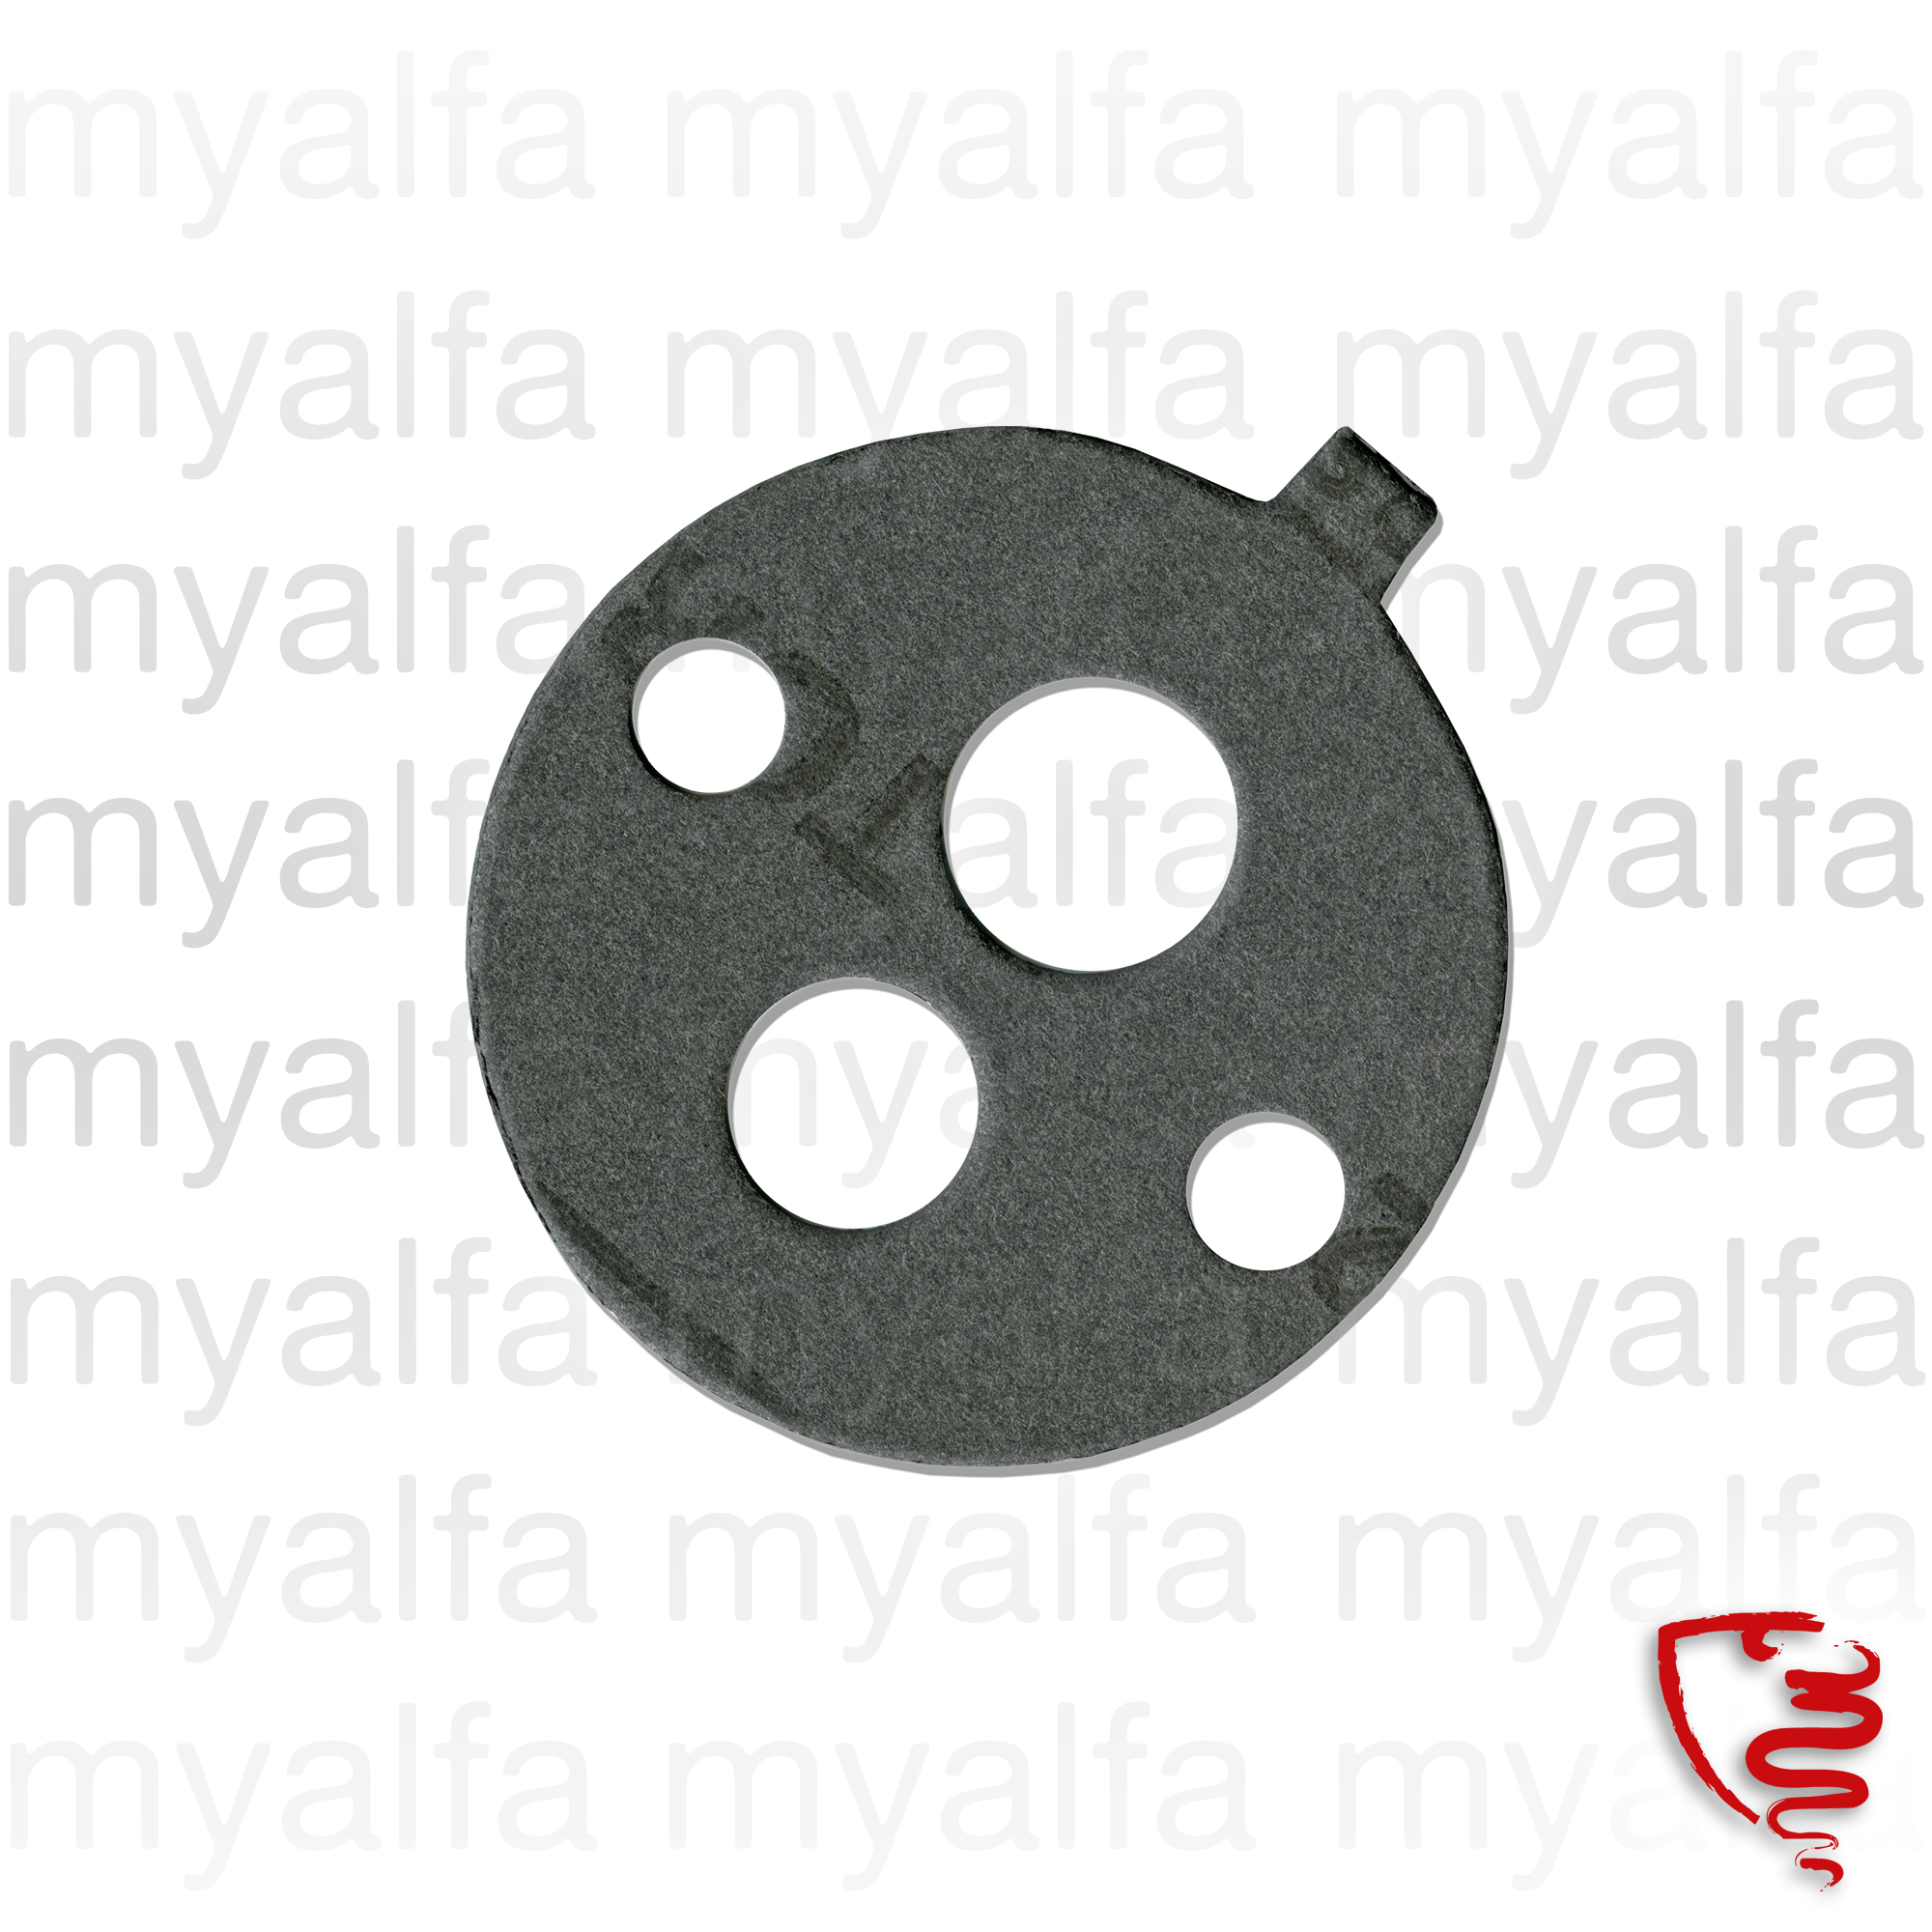 Board of the 1st series oil filter support for 105/115, Filters, Oil filters